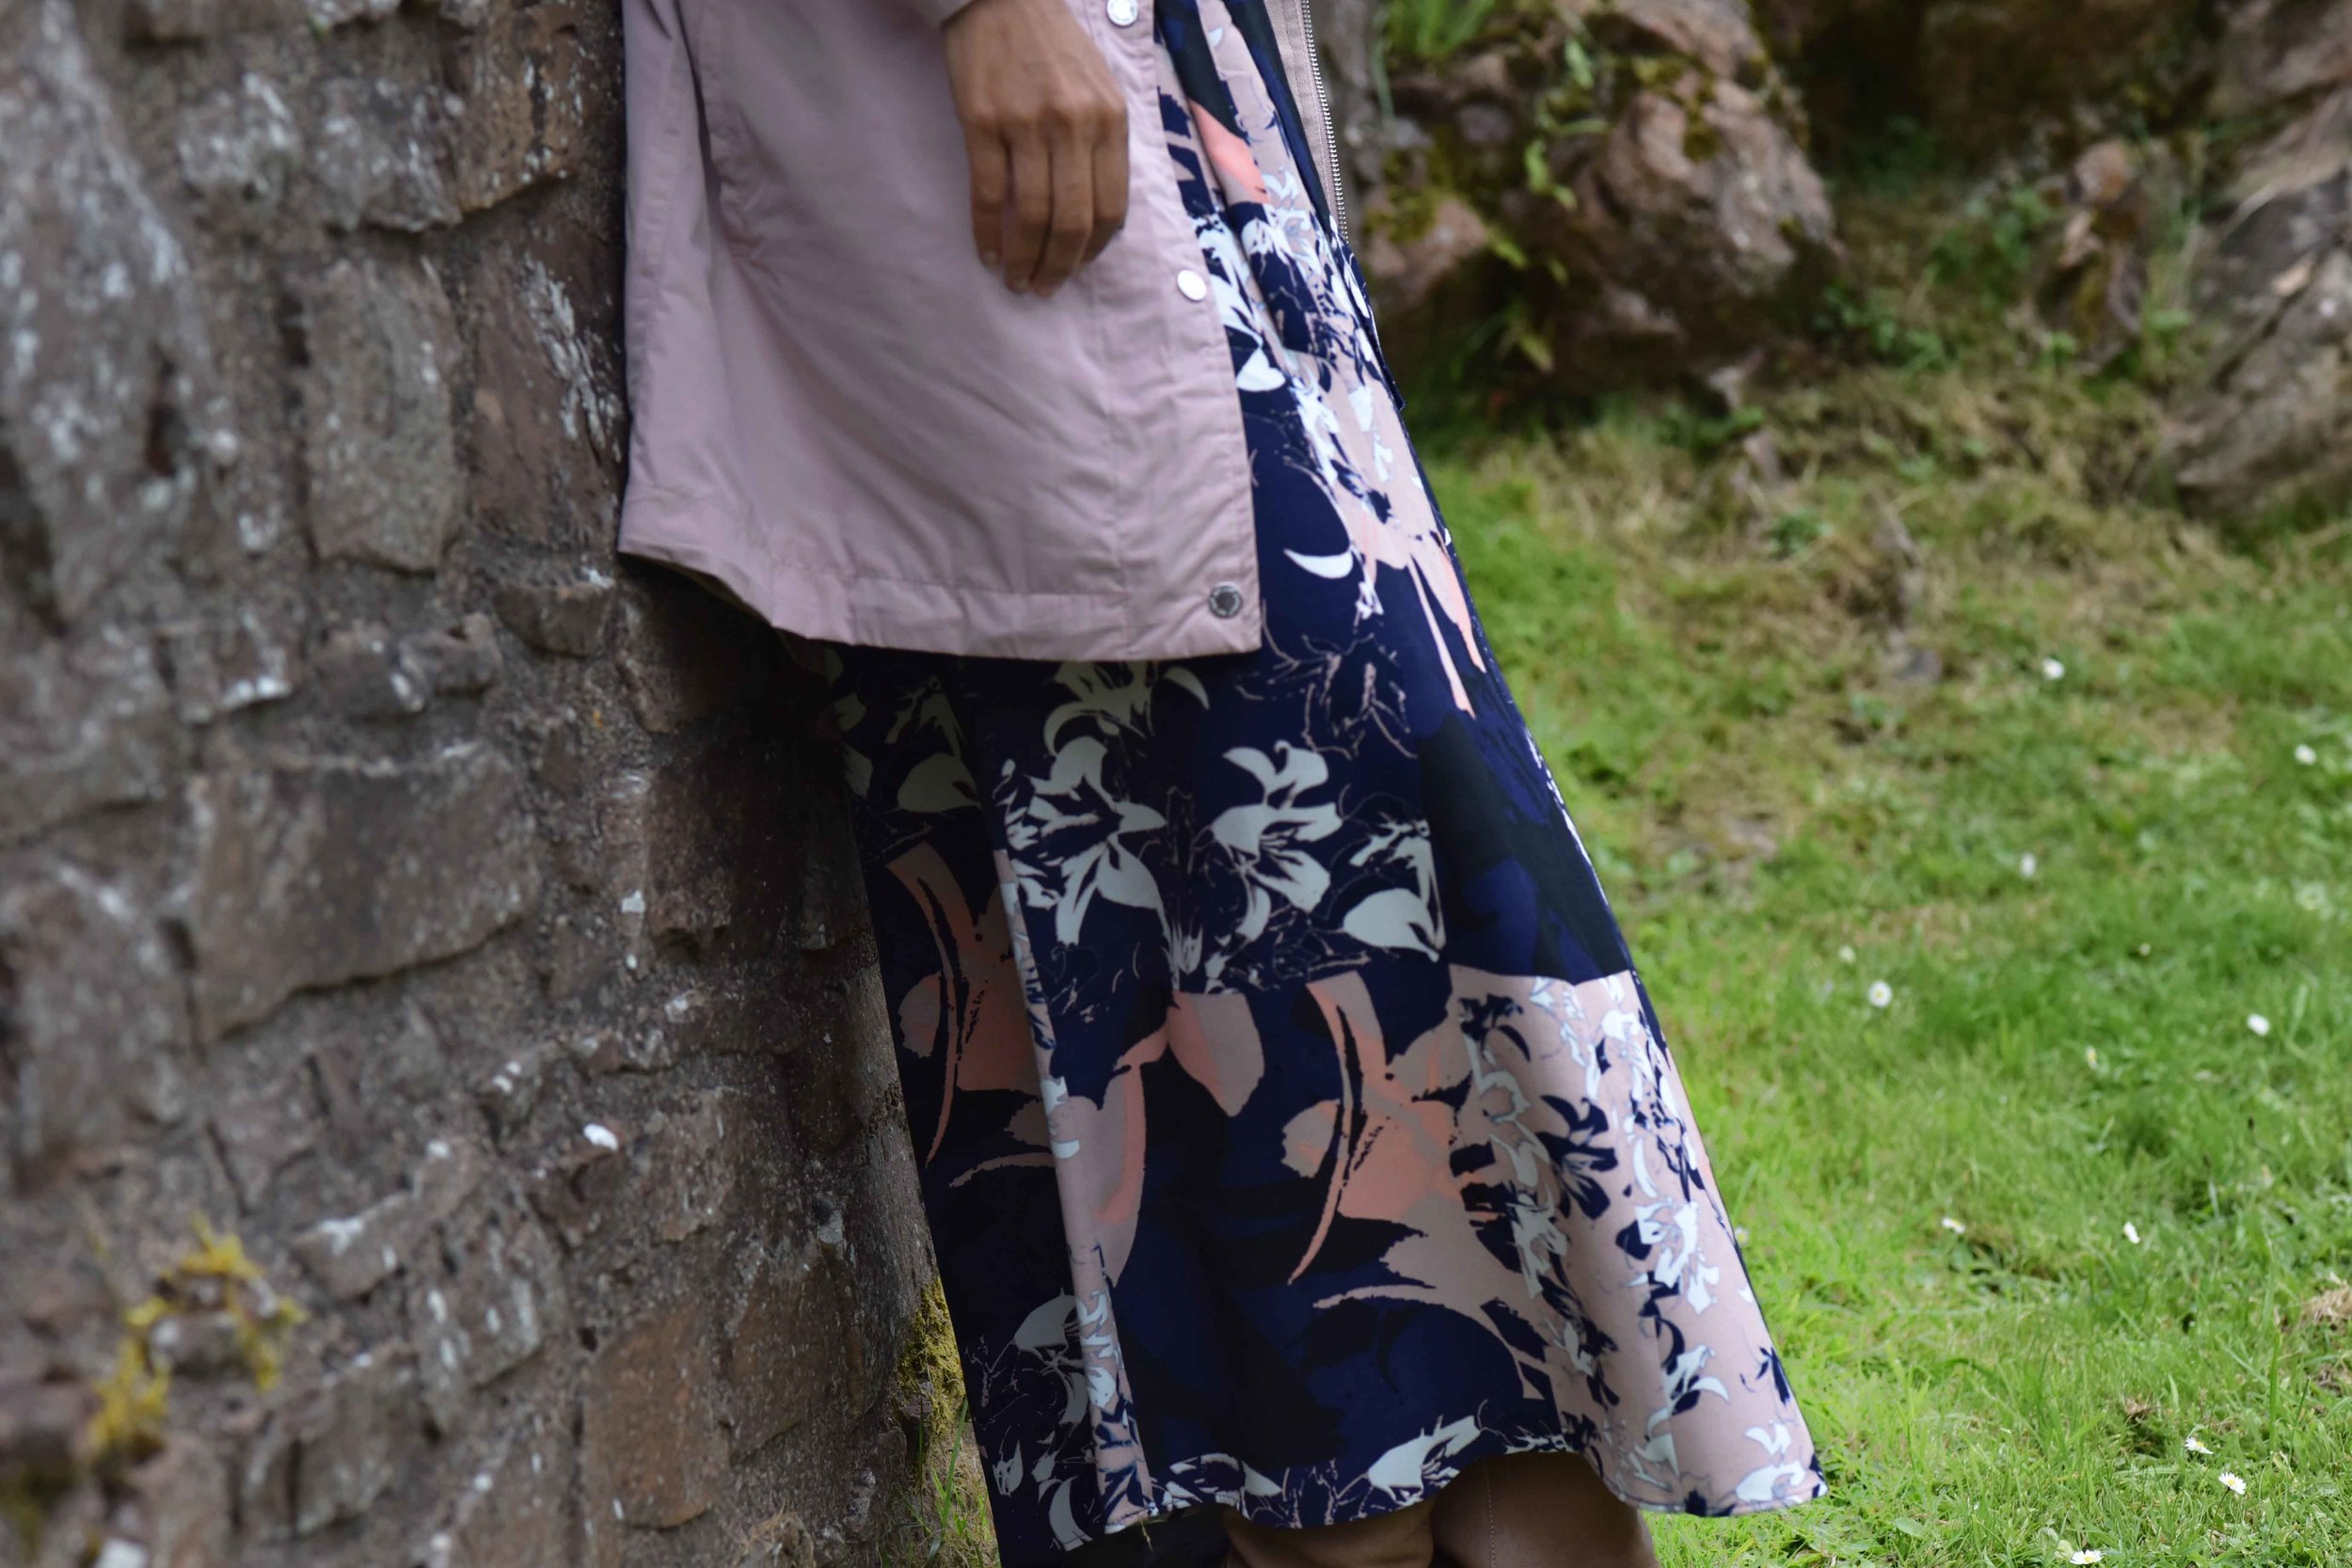 Pink Stormwear M&S  jacket, printed maxi dress, Urquhart Castle, Loch Ness, Scotland. Image©thingstodot.com